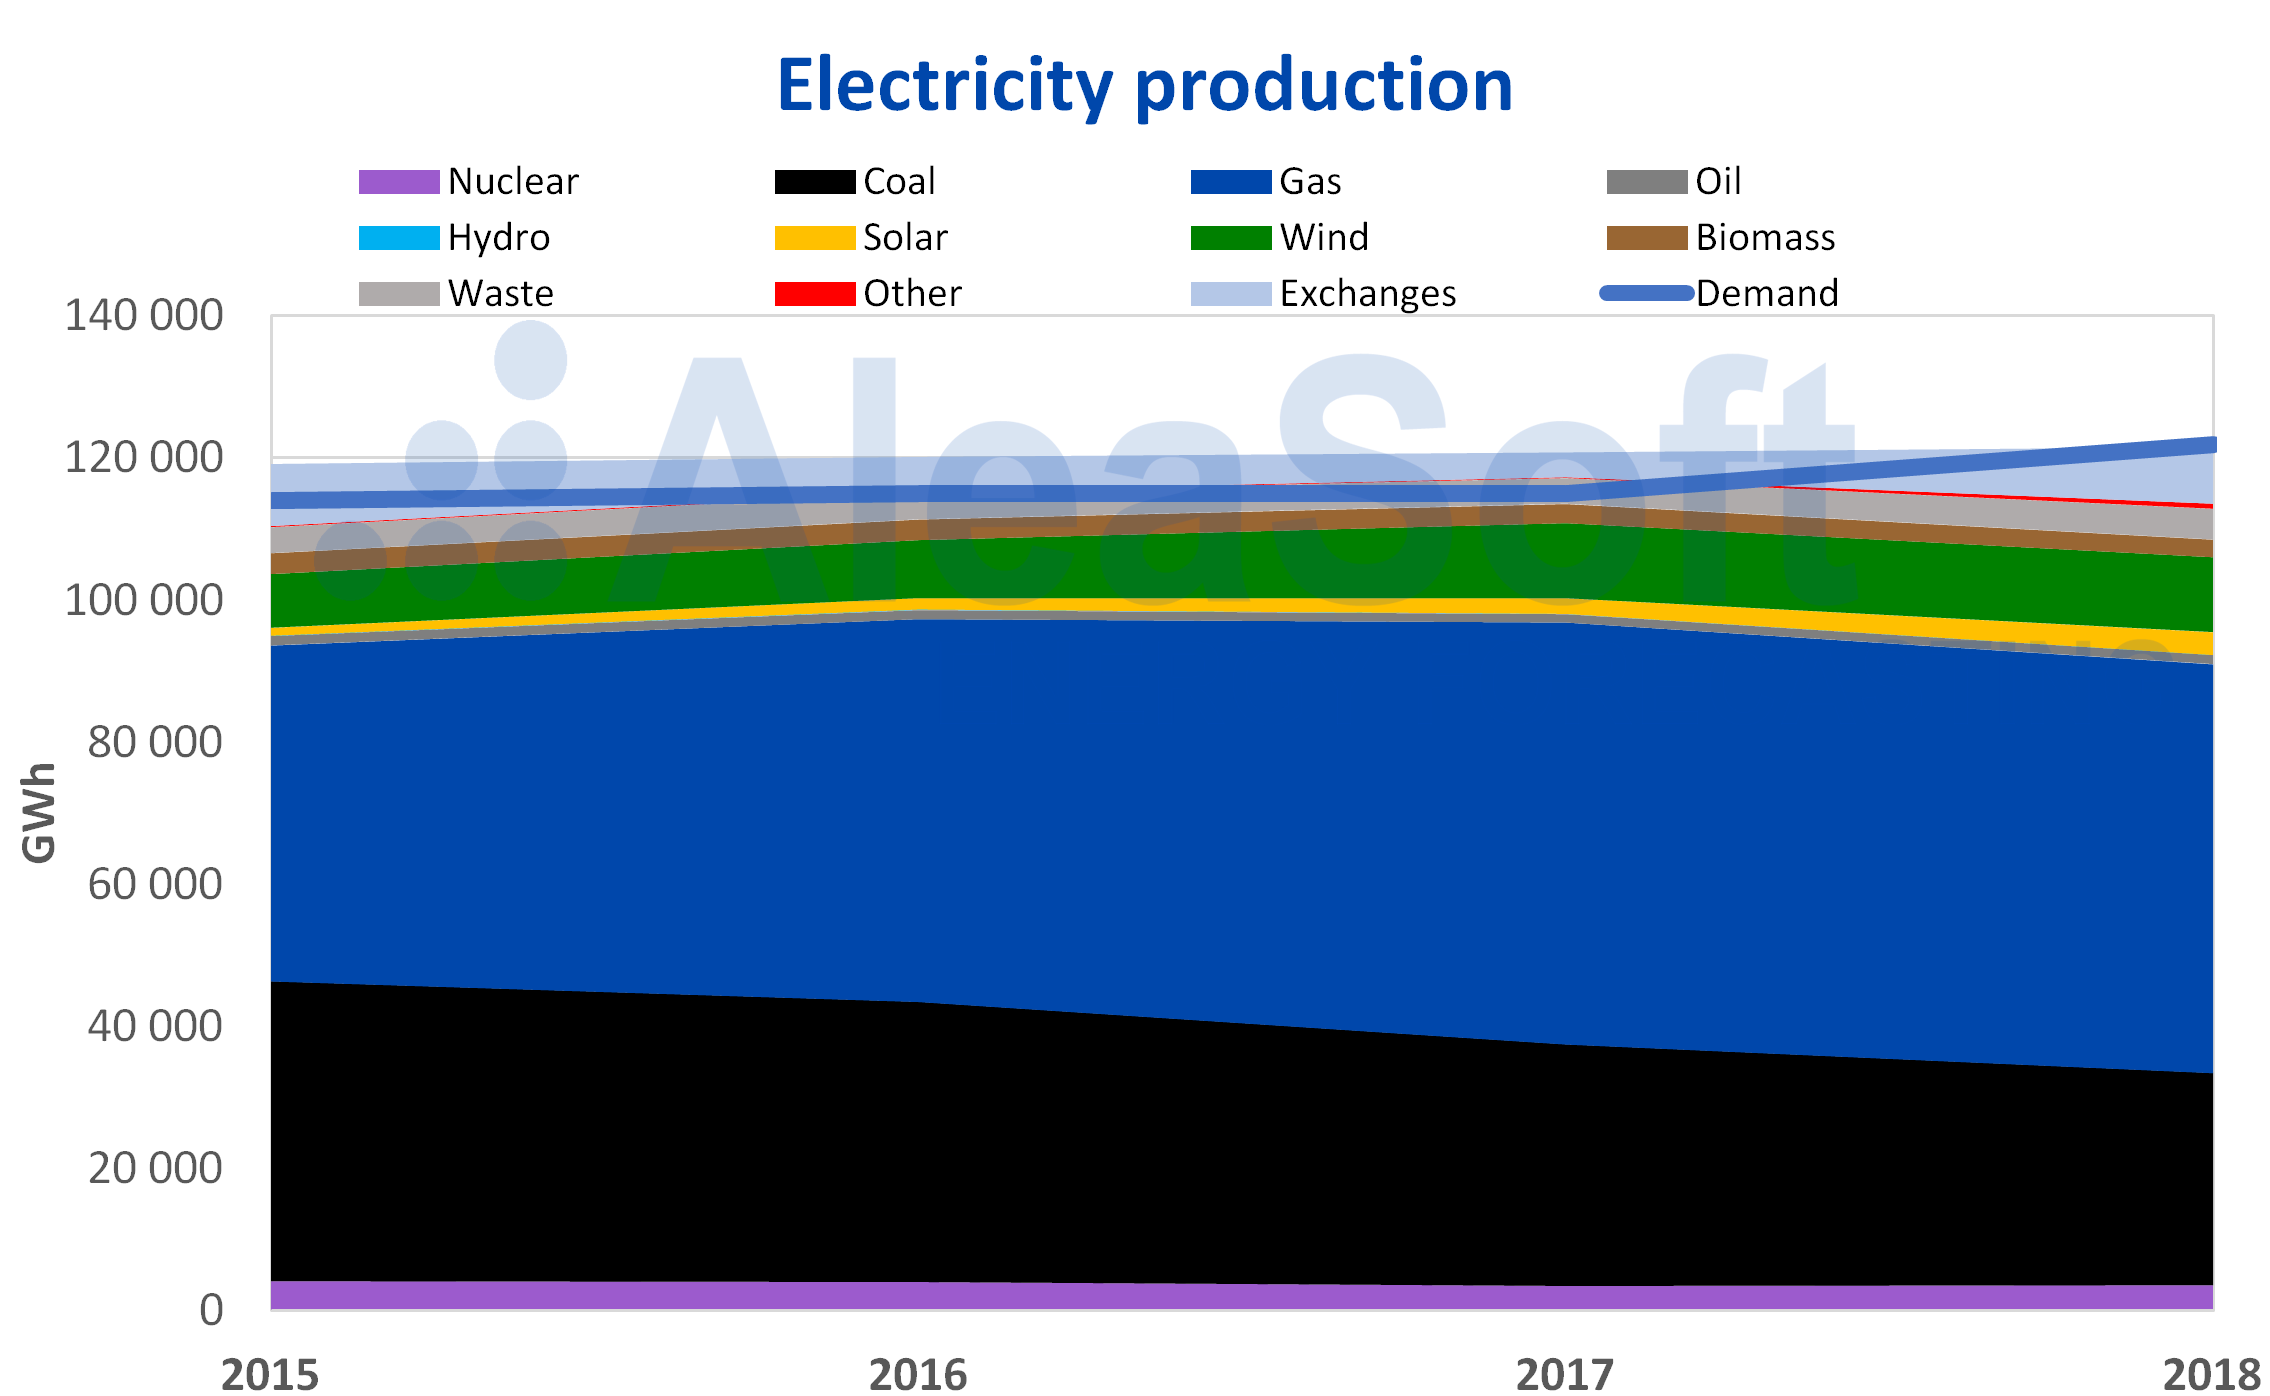 AleaSoft - Netherlands electricity production